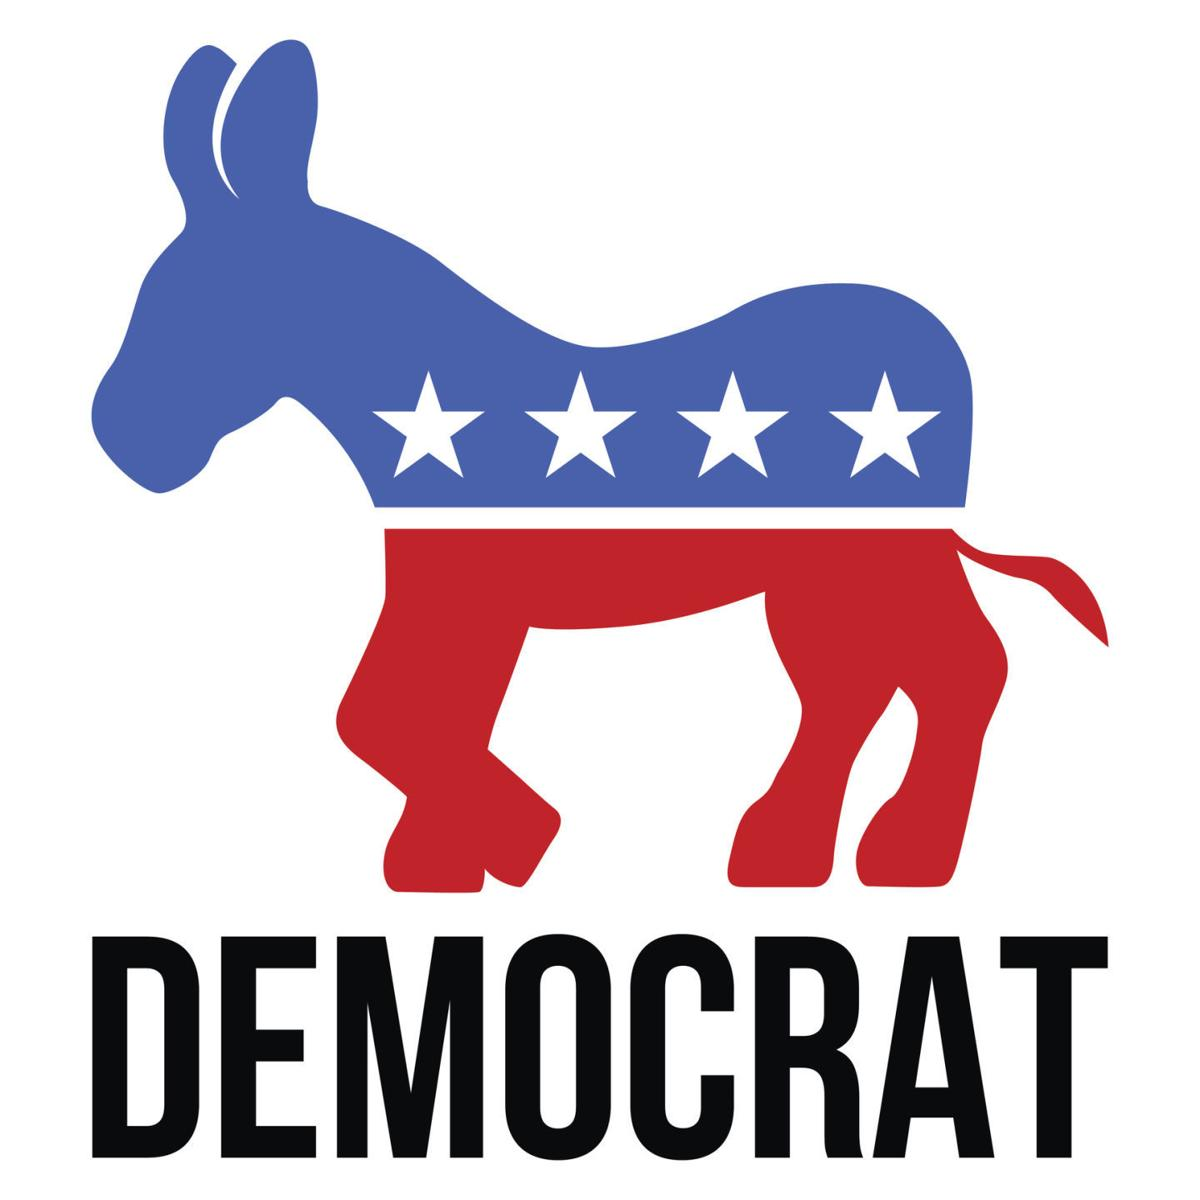 the flag for the democrats with a donkey